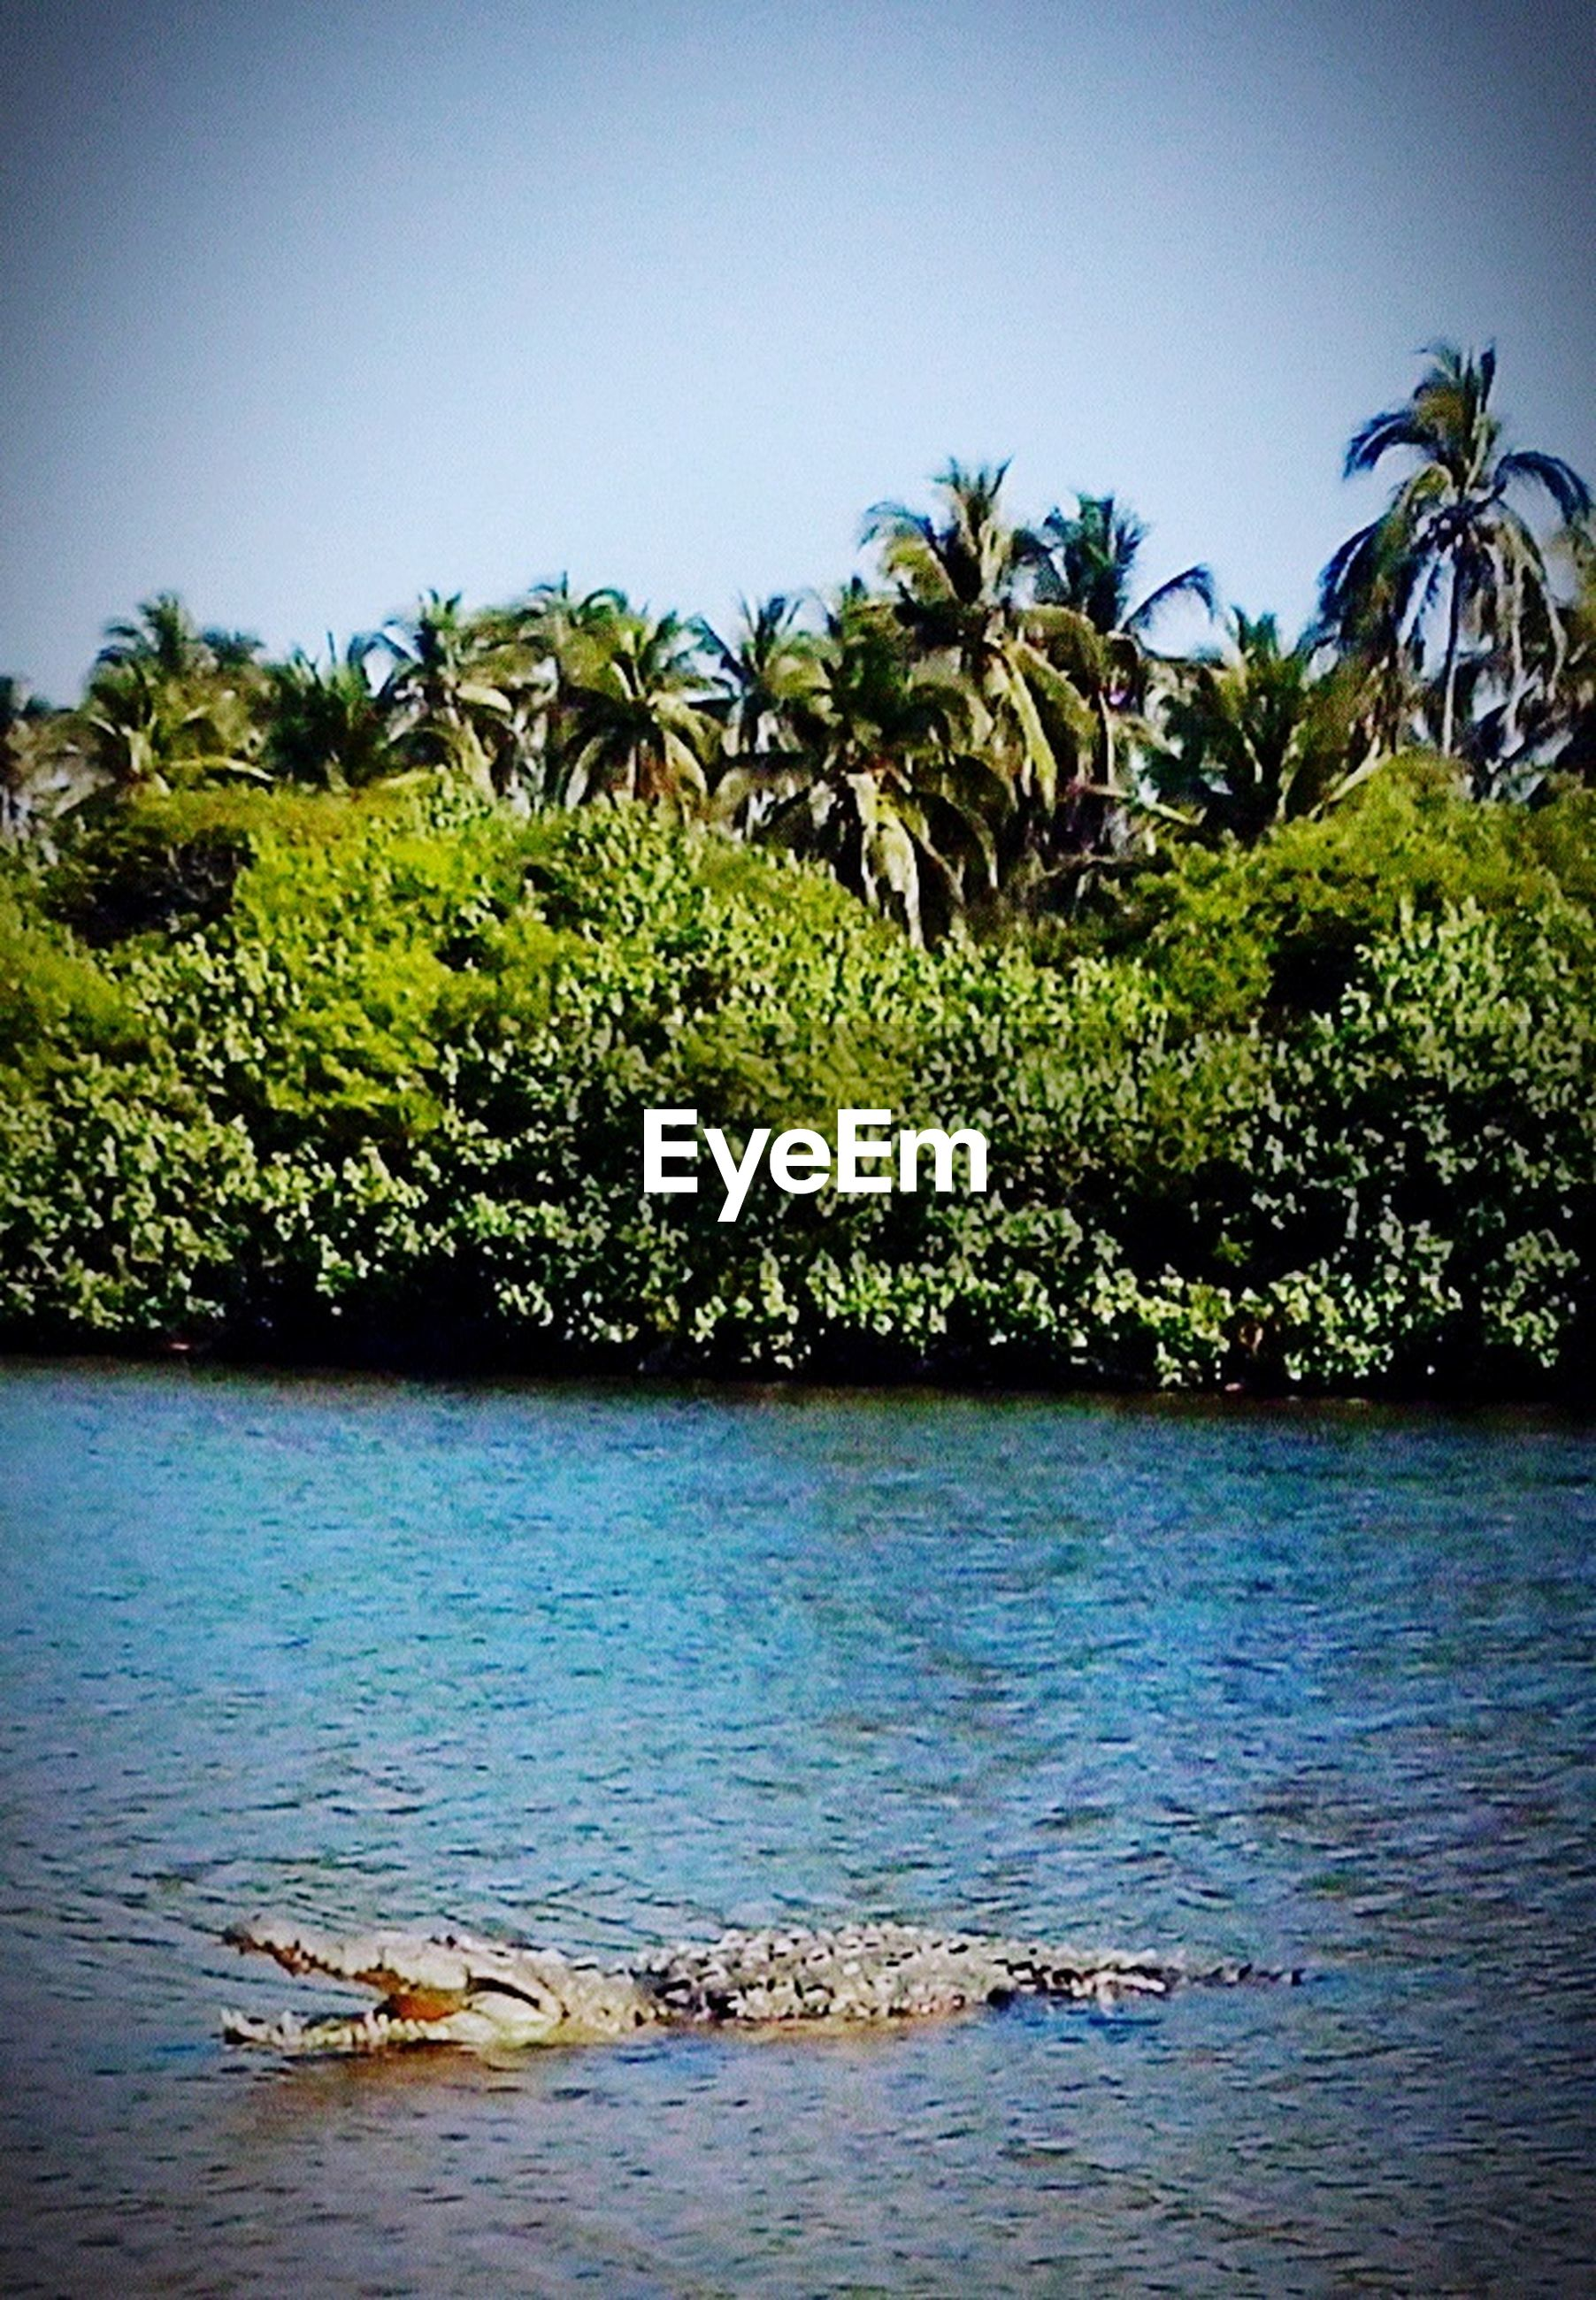 tree, water, growth, tranquility, tranquil scene, nature, beauty in nature, clear sky, waterfront, scenics, palm tree, green color, lake, branch, sky, sea, day, plant, rippled, idyllic